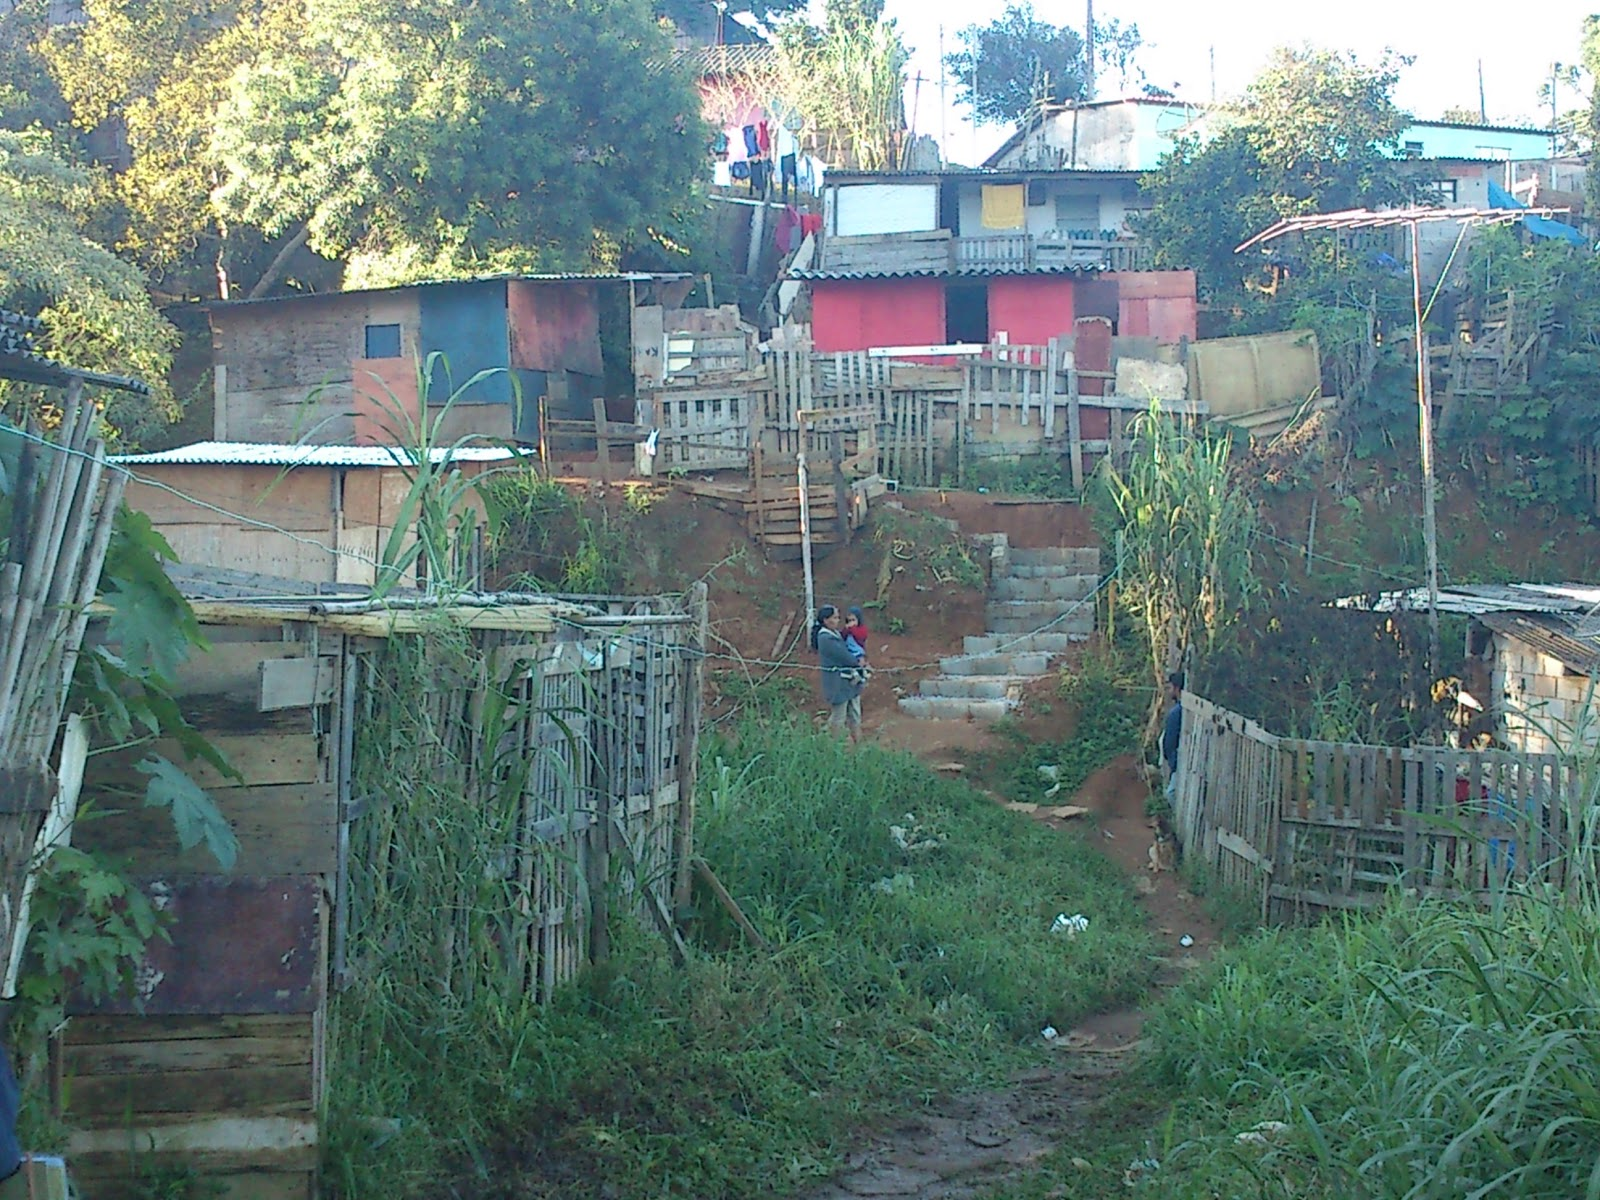 Guarda civil de ibi n prende traficante na favela do for Guarda herramientas para jardin